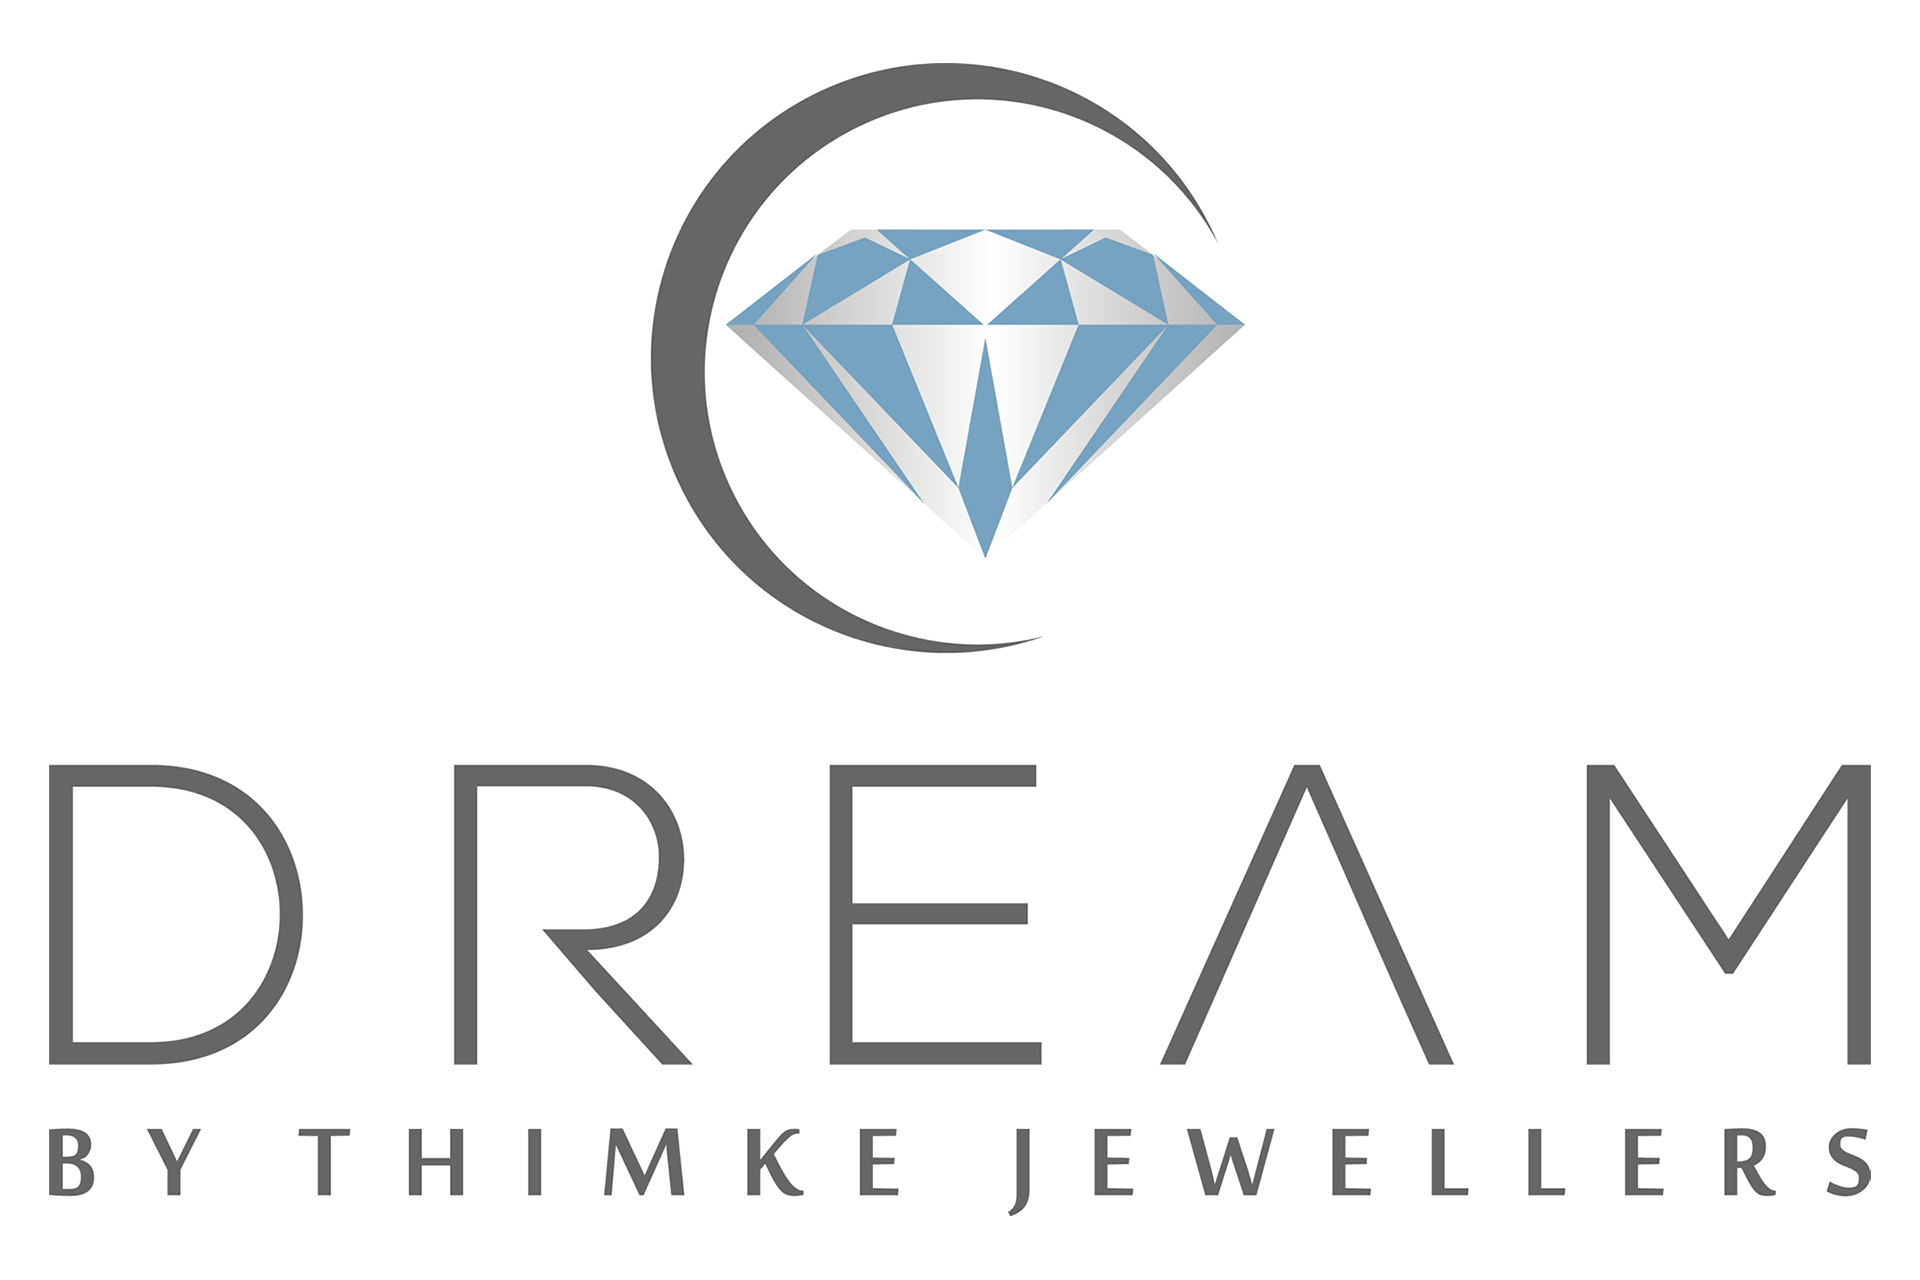 DREAM JEWELERS